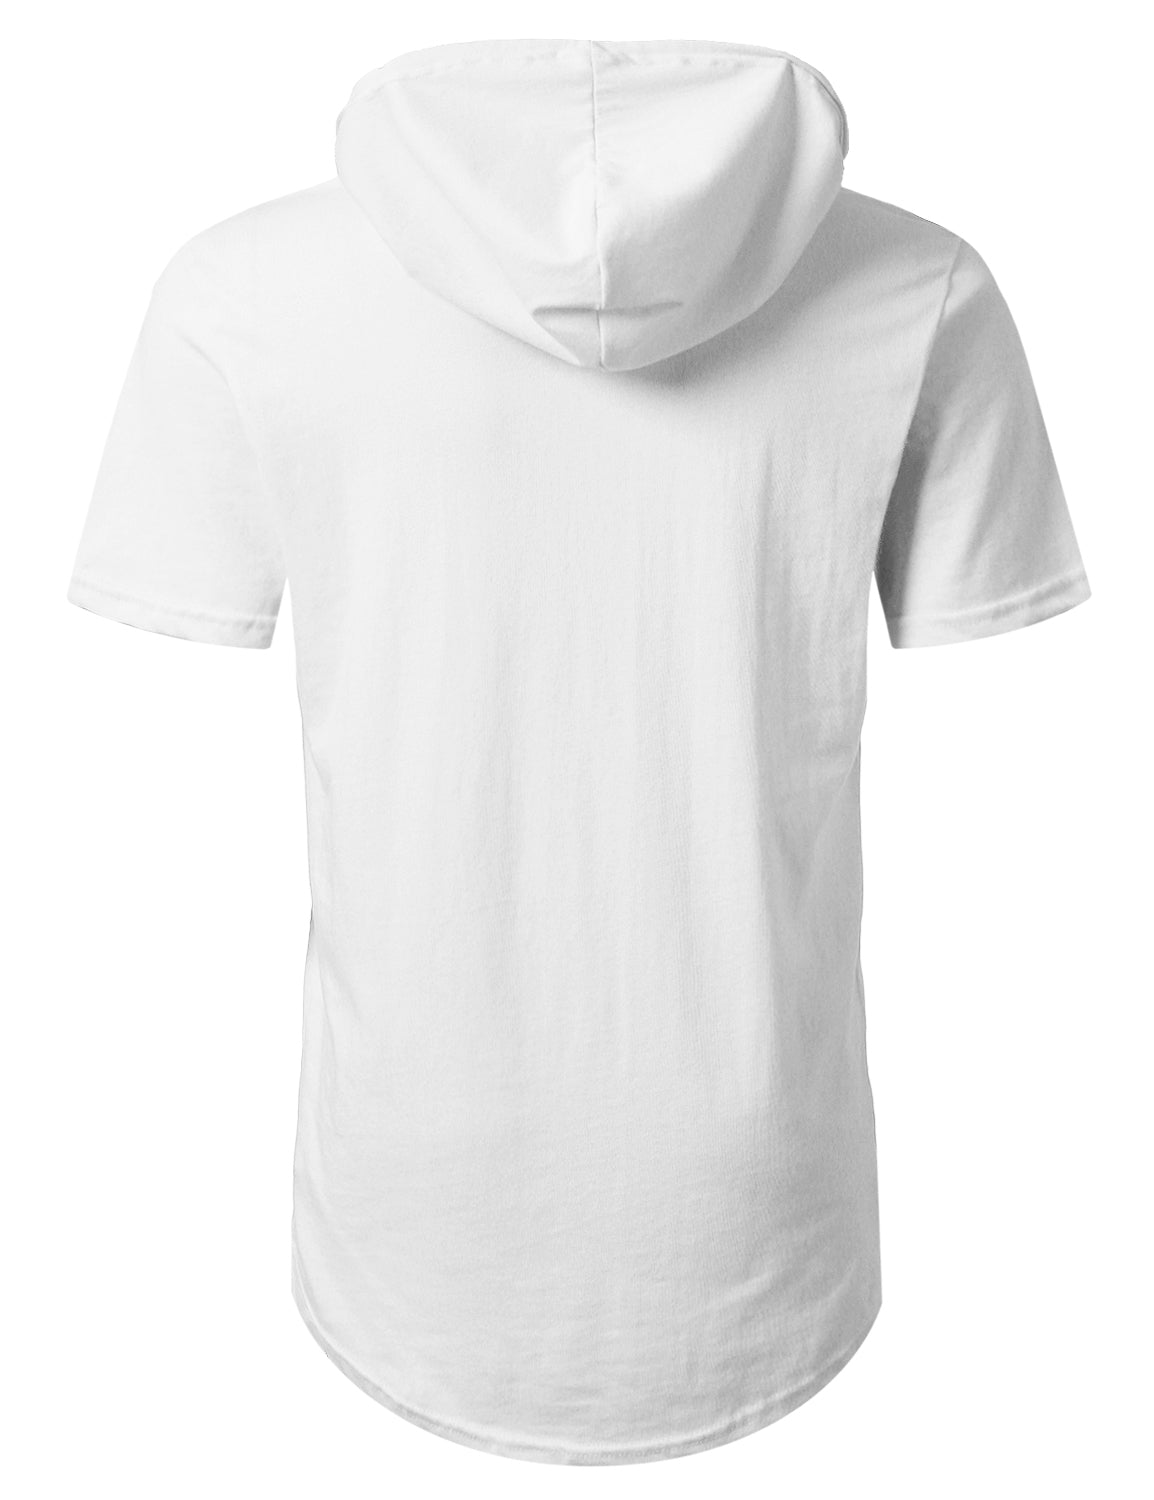 WHITE Short Sleeve Pullover Hoodie Shirt - URBANCREWS